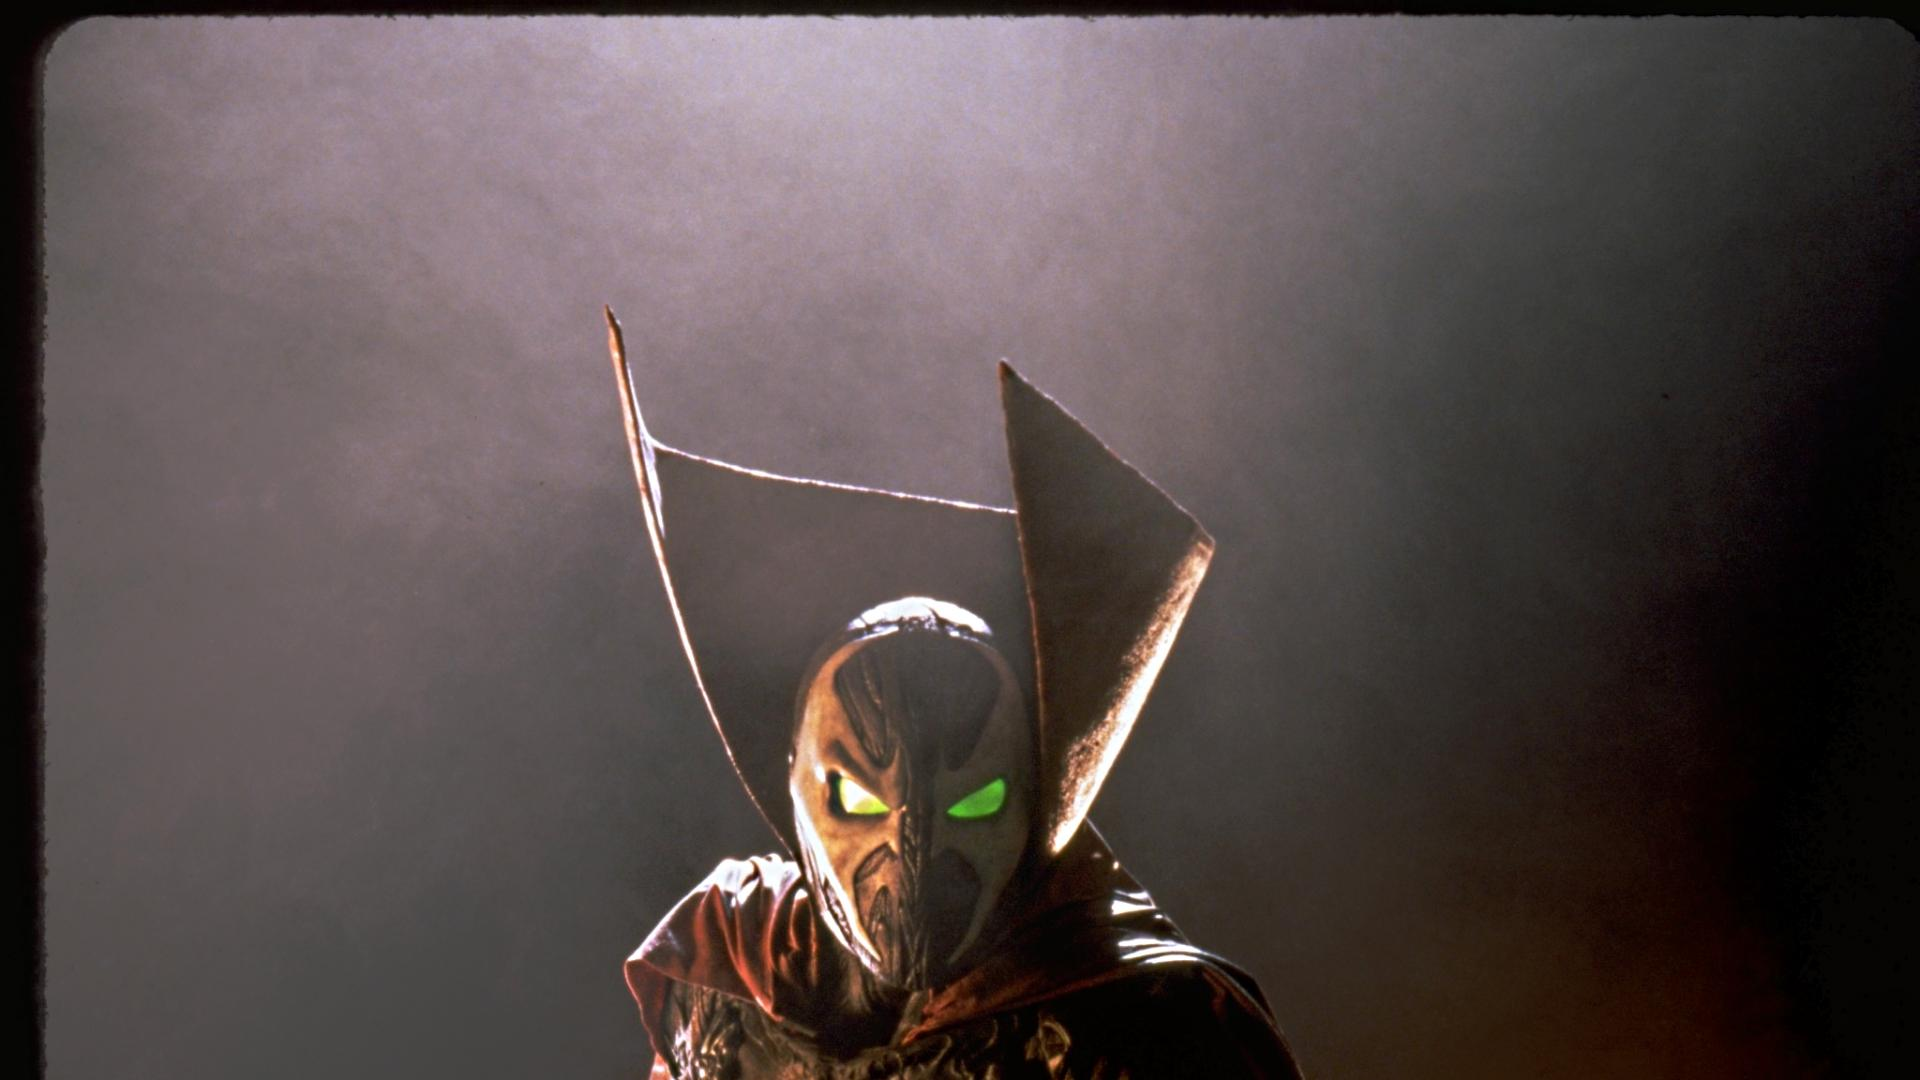 Spawn wallpaper - (#172676) - High Quality and Resolution Wallpapers ...